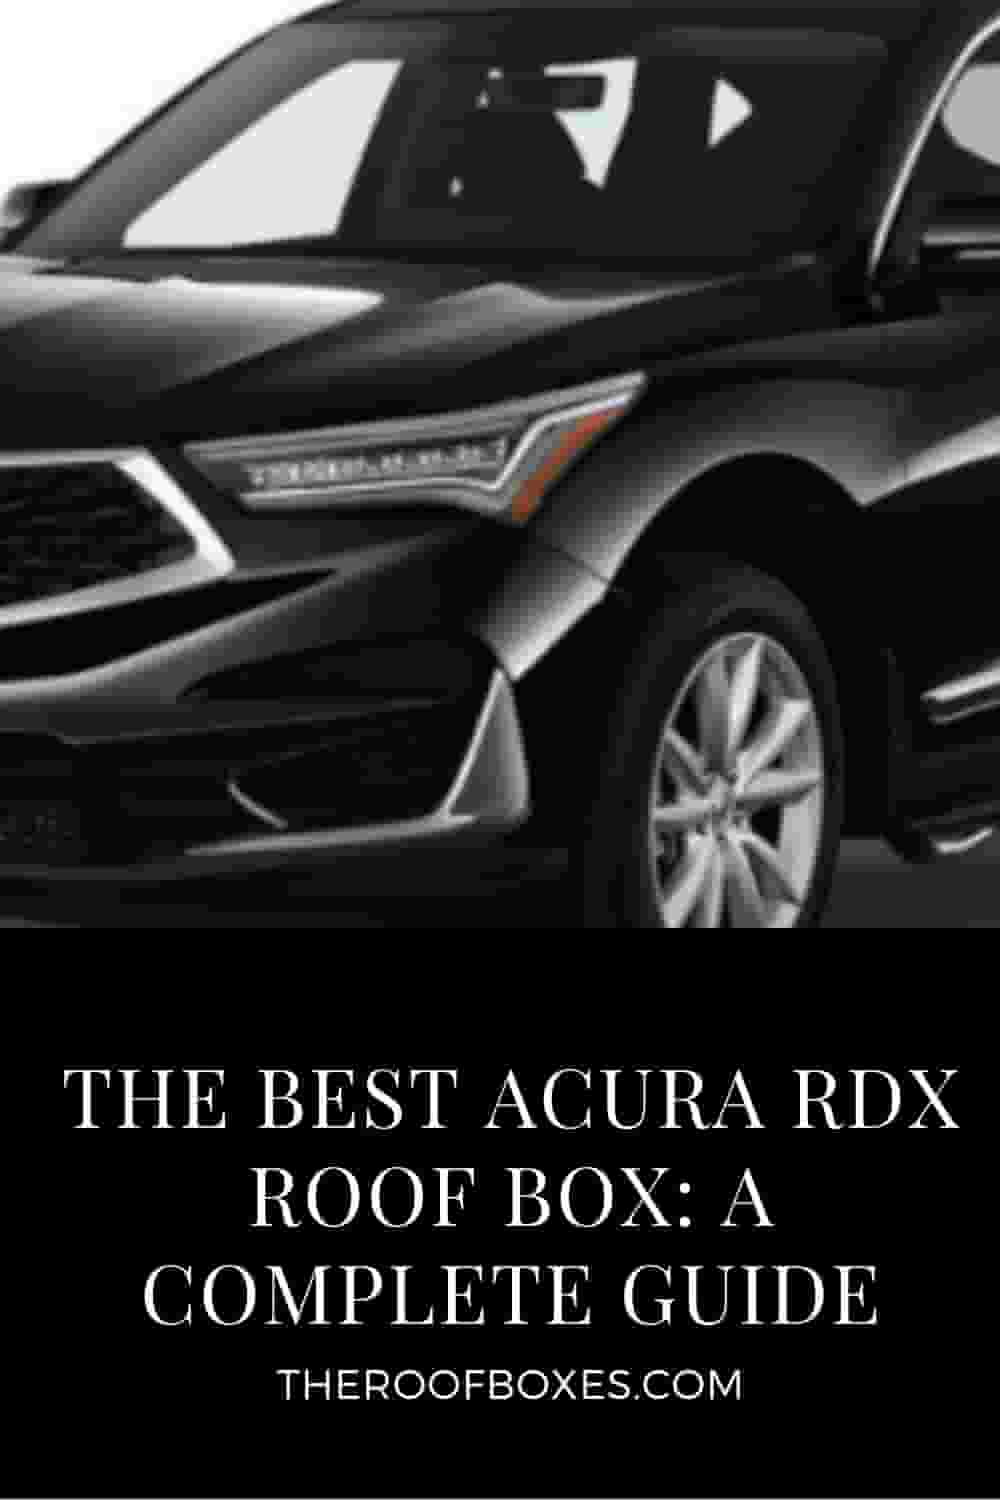 Acura RDX Roof Box– Reviews and Comparison